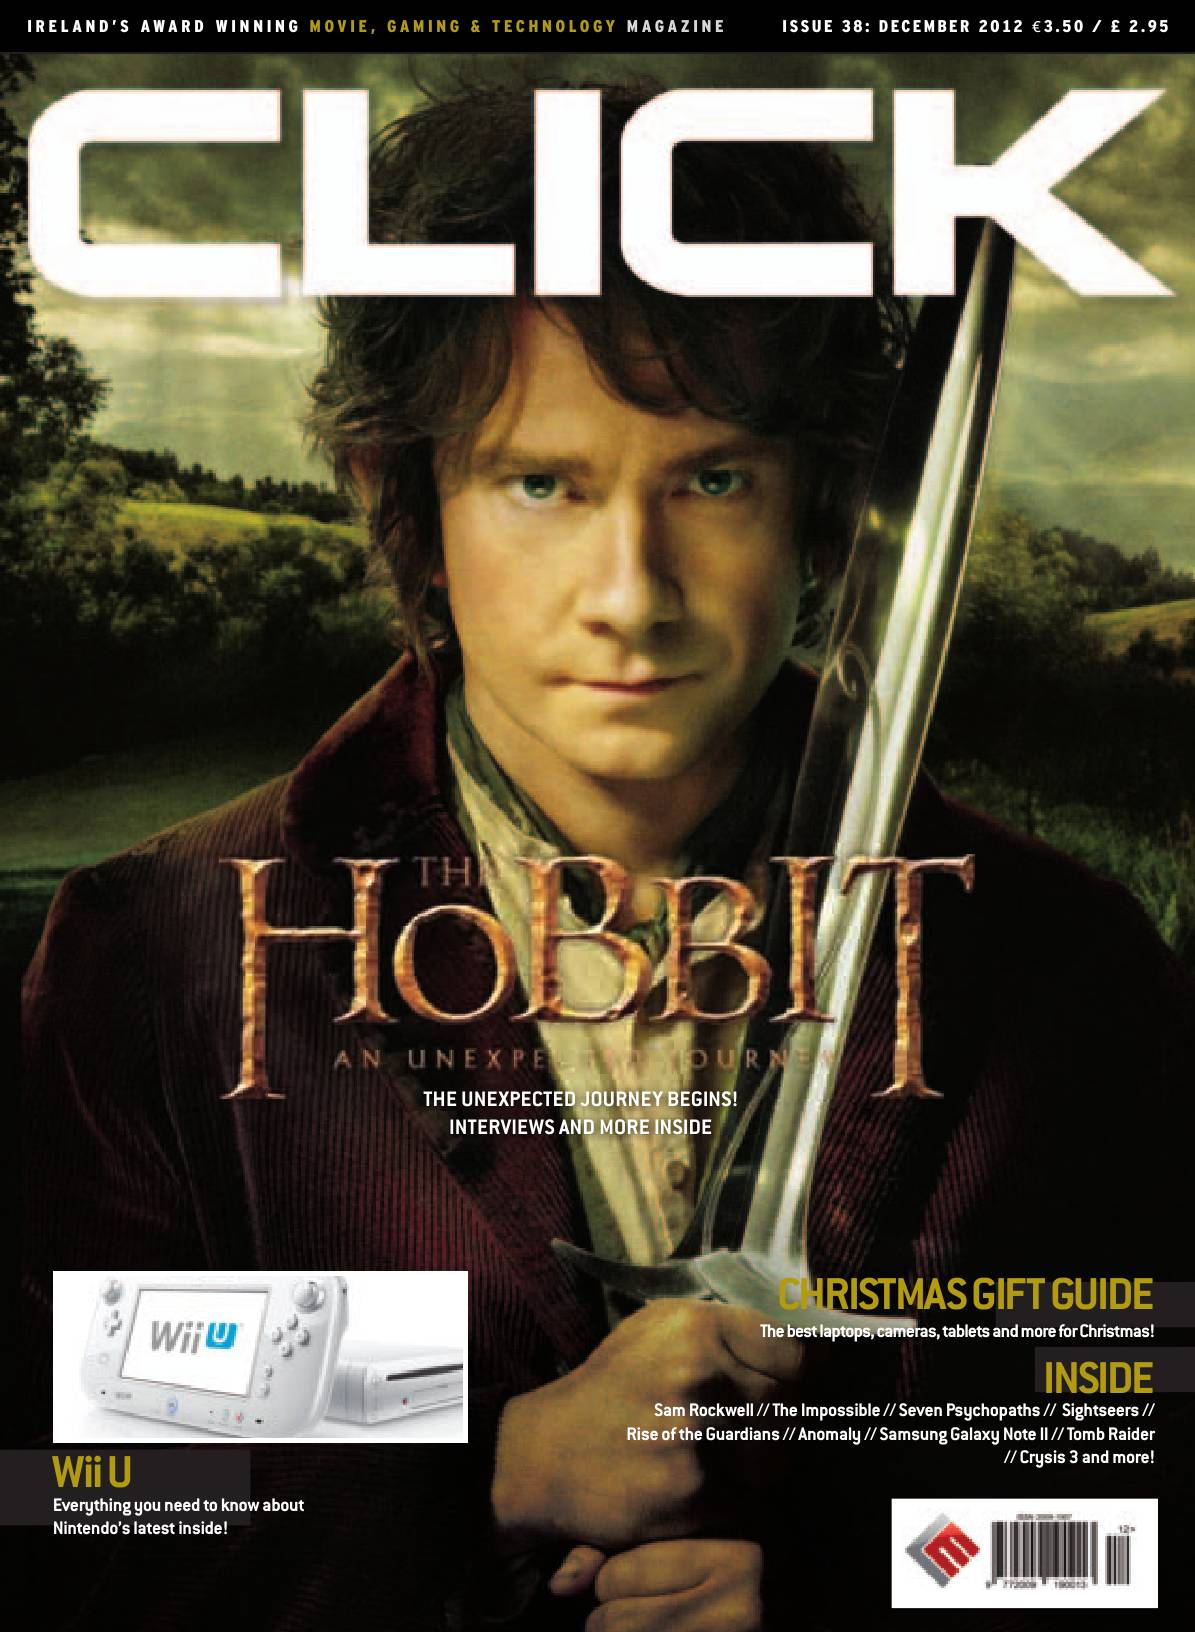 Click Issue 38 Dec 2012